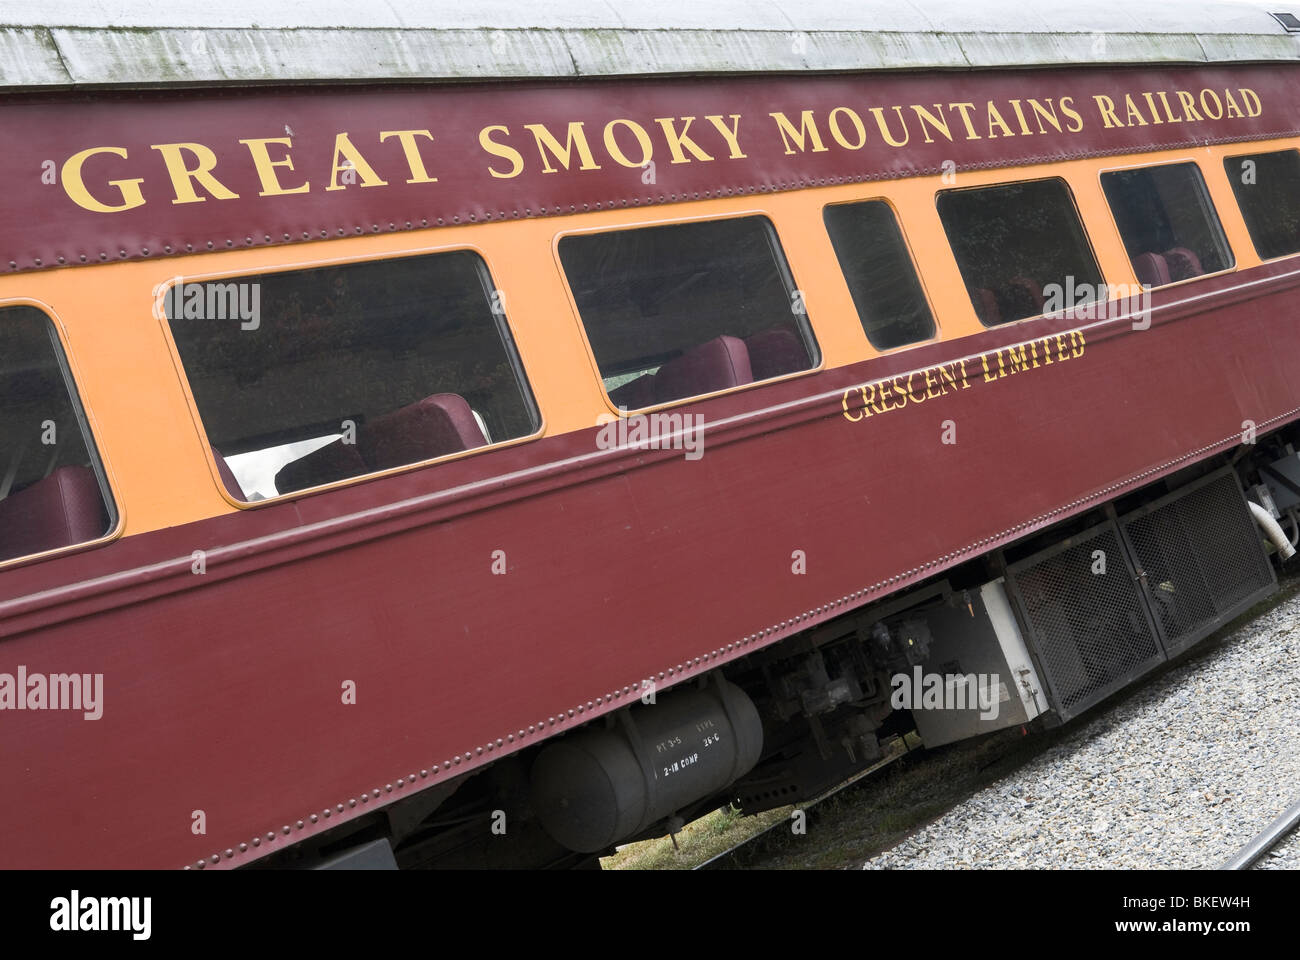 The Great Smoky Mountains Railroad, based in Bryson City, North Carolina, USA - Stock Image